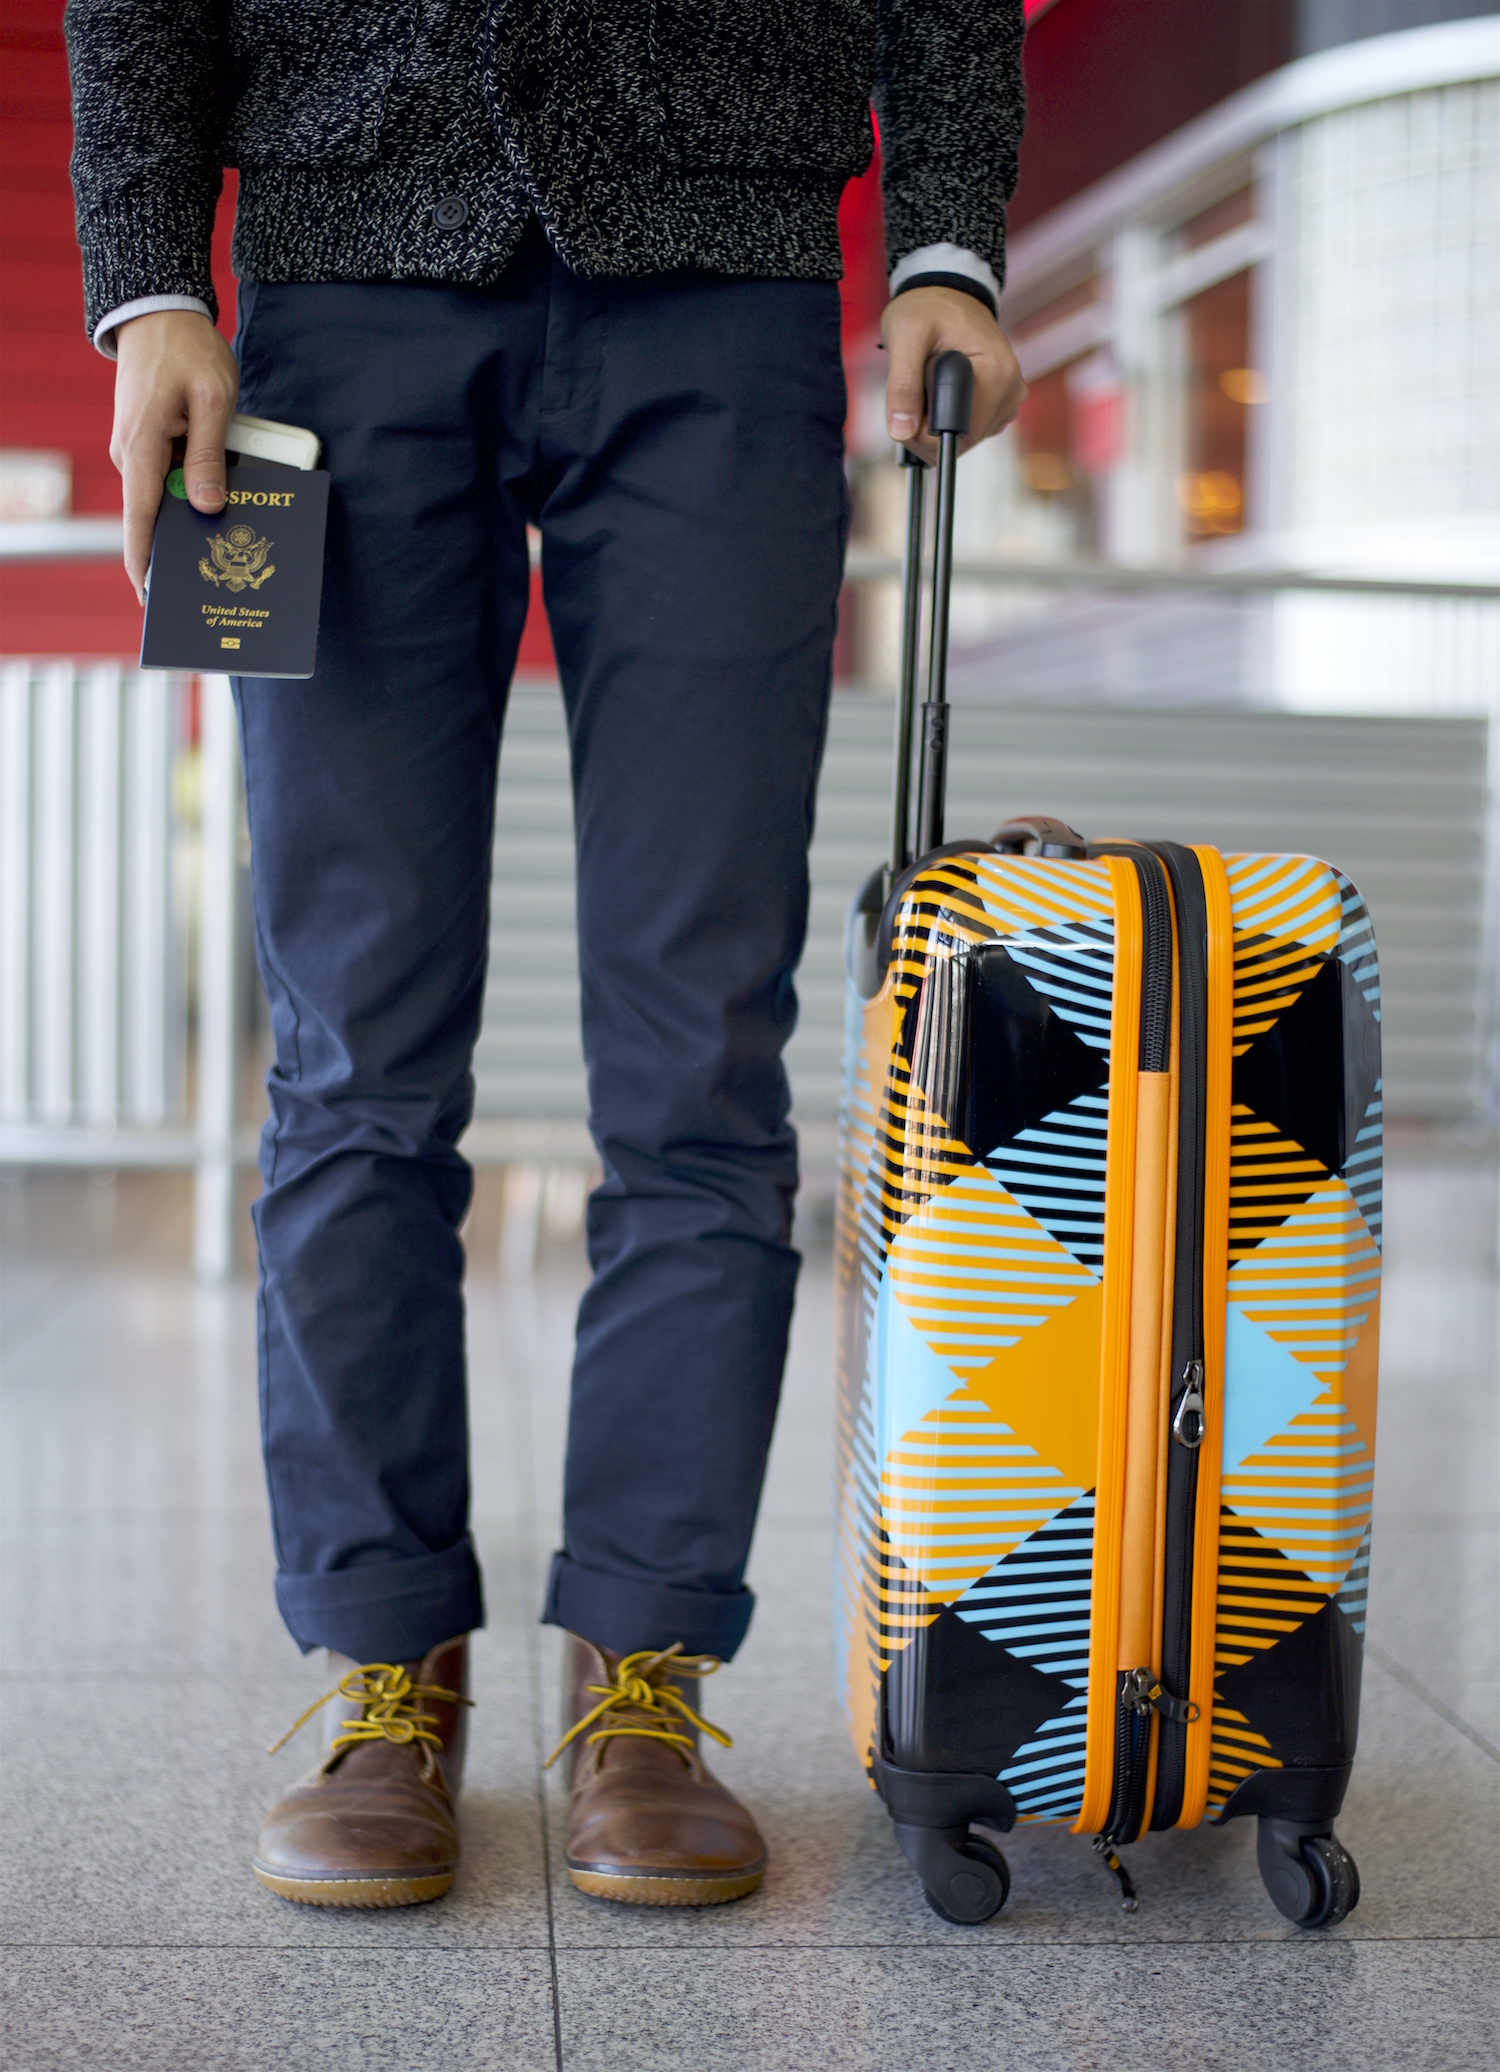 Loudmouth luggage review